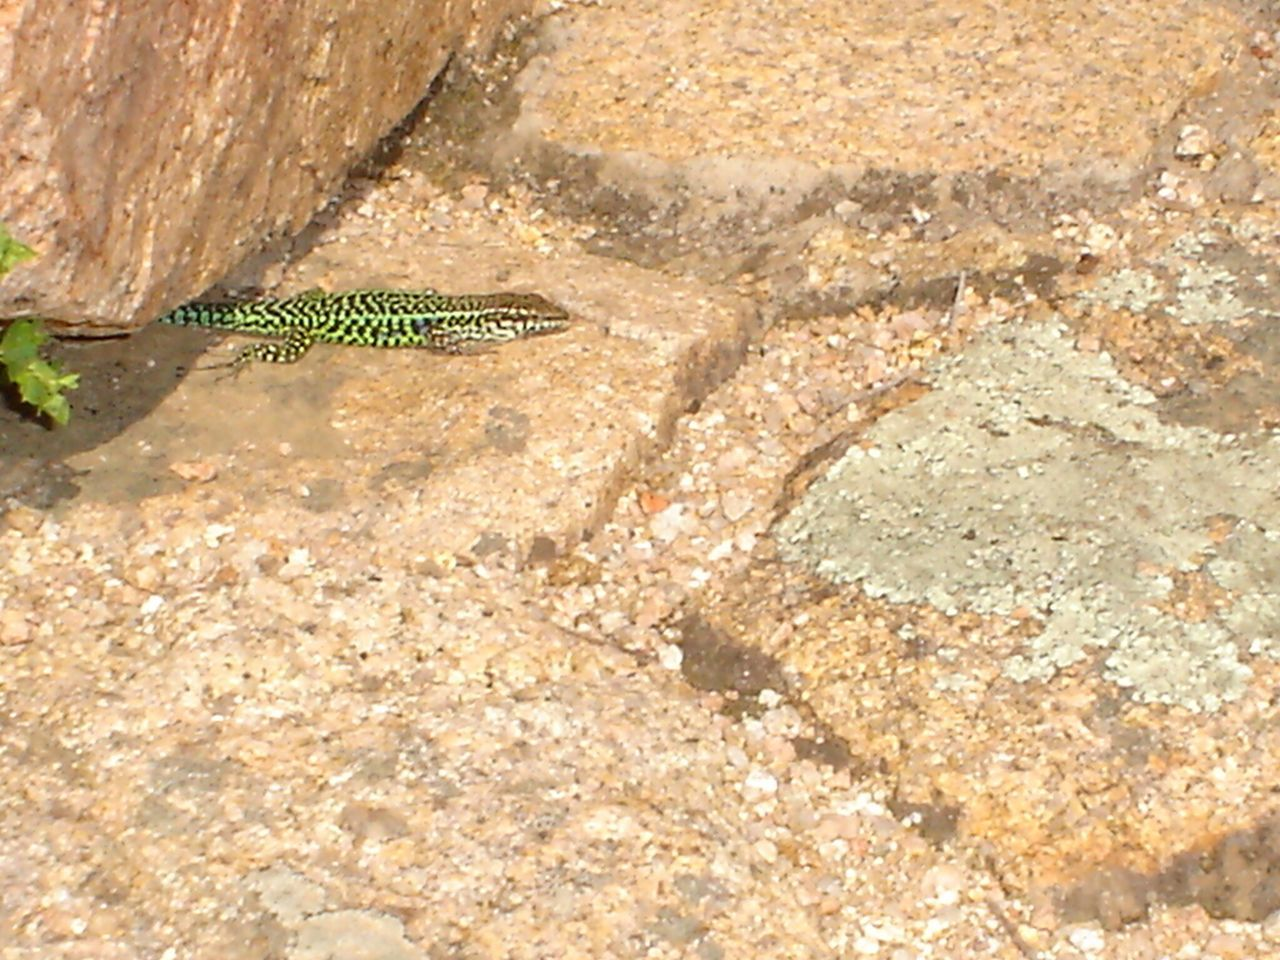 Italy Sardegna Sardinia Lizard Animal Themes One Animal Lizard Animals In The Wild Caterpillar Close-up Zoology Nature Crawling Outdoors Day Botany Green Color Rock Tranquility No People Fragility